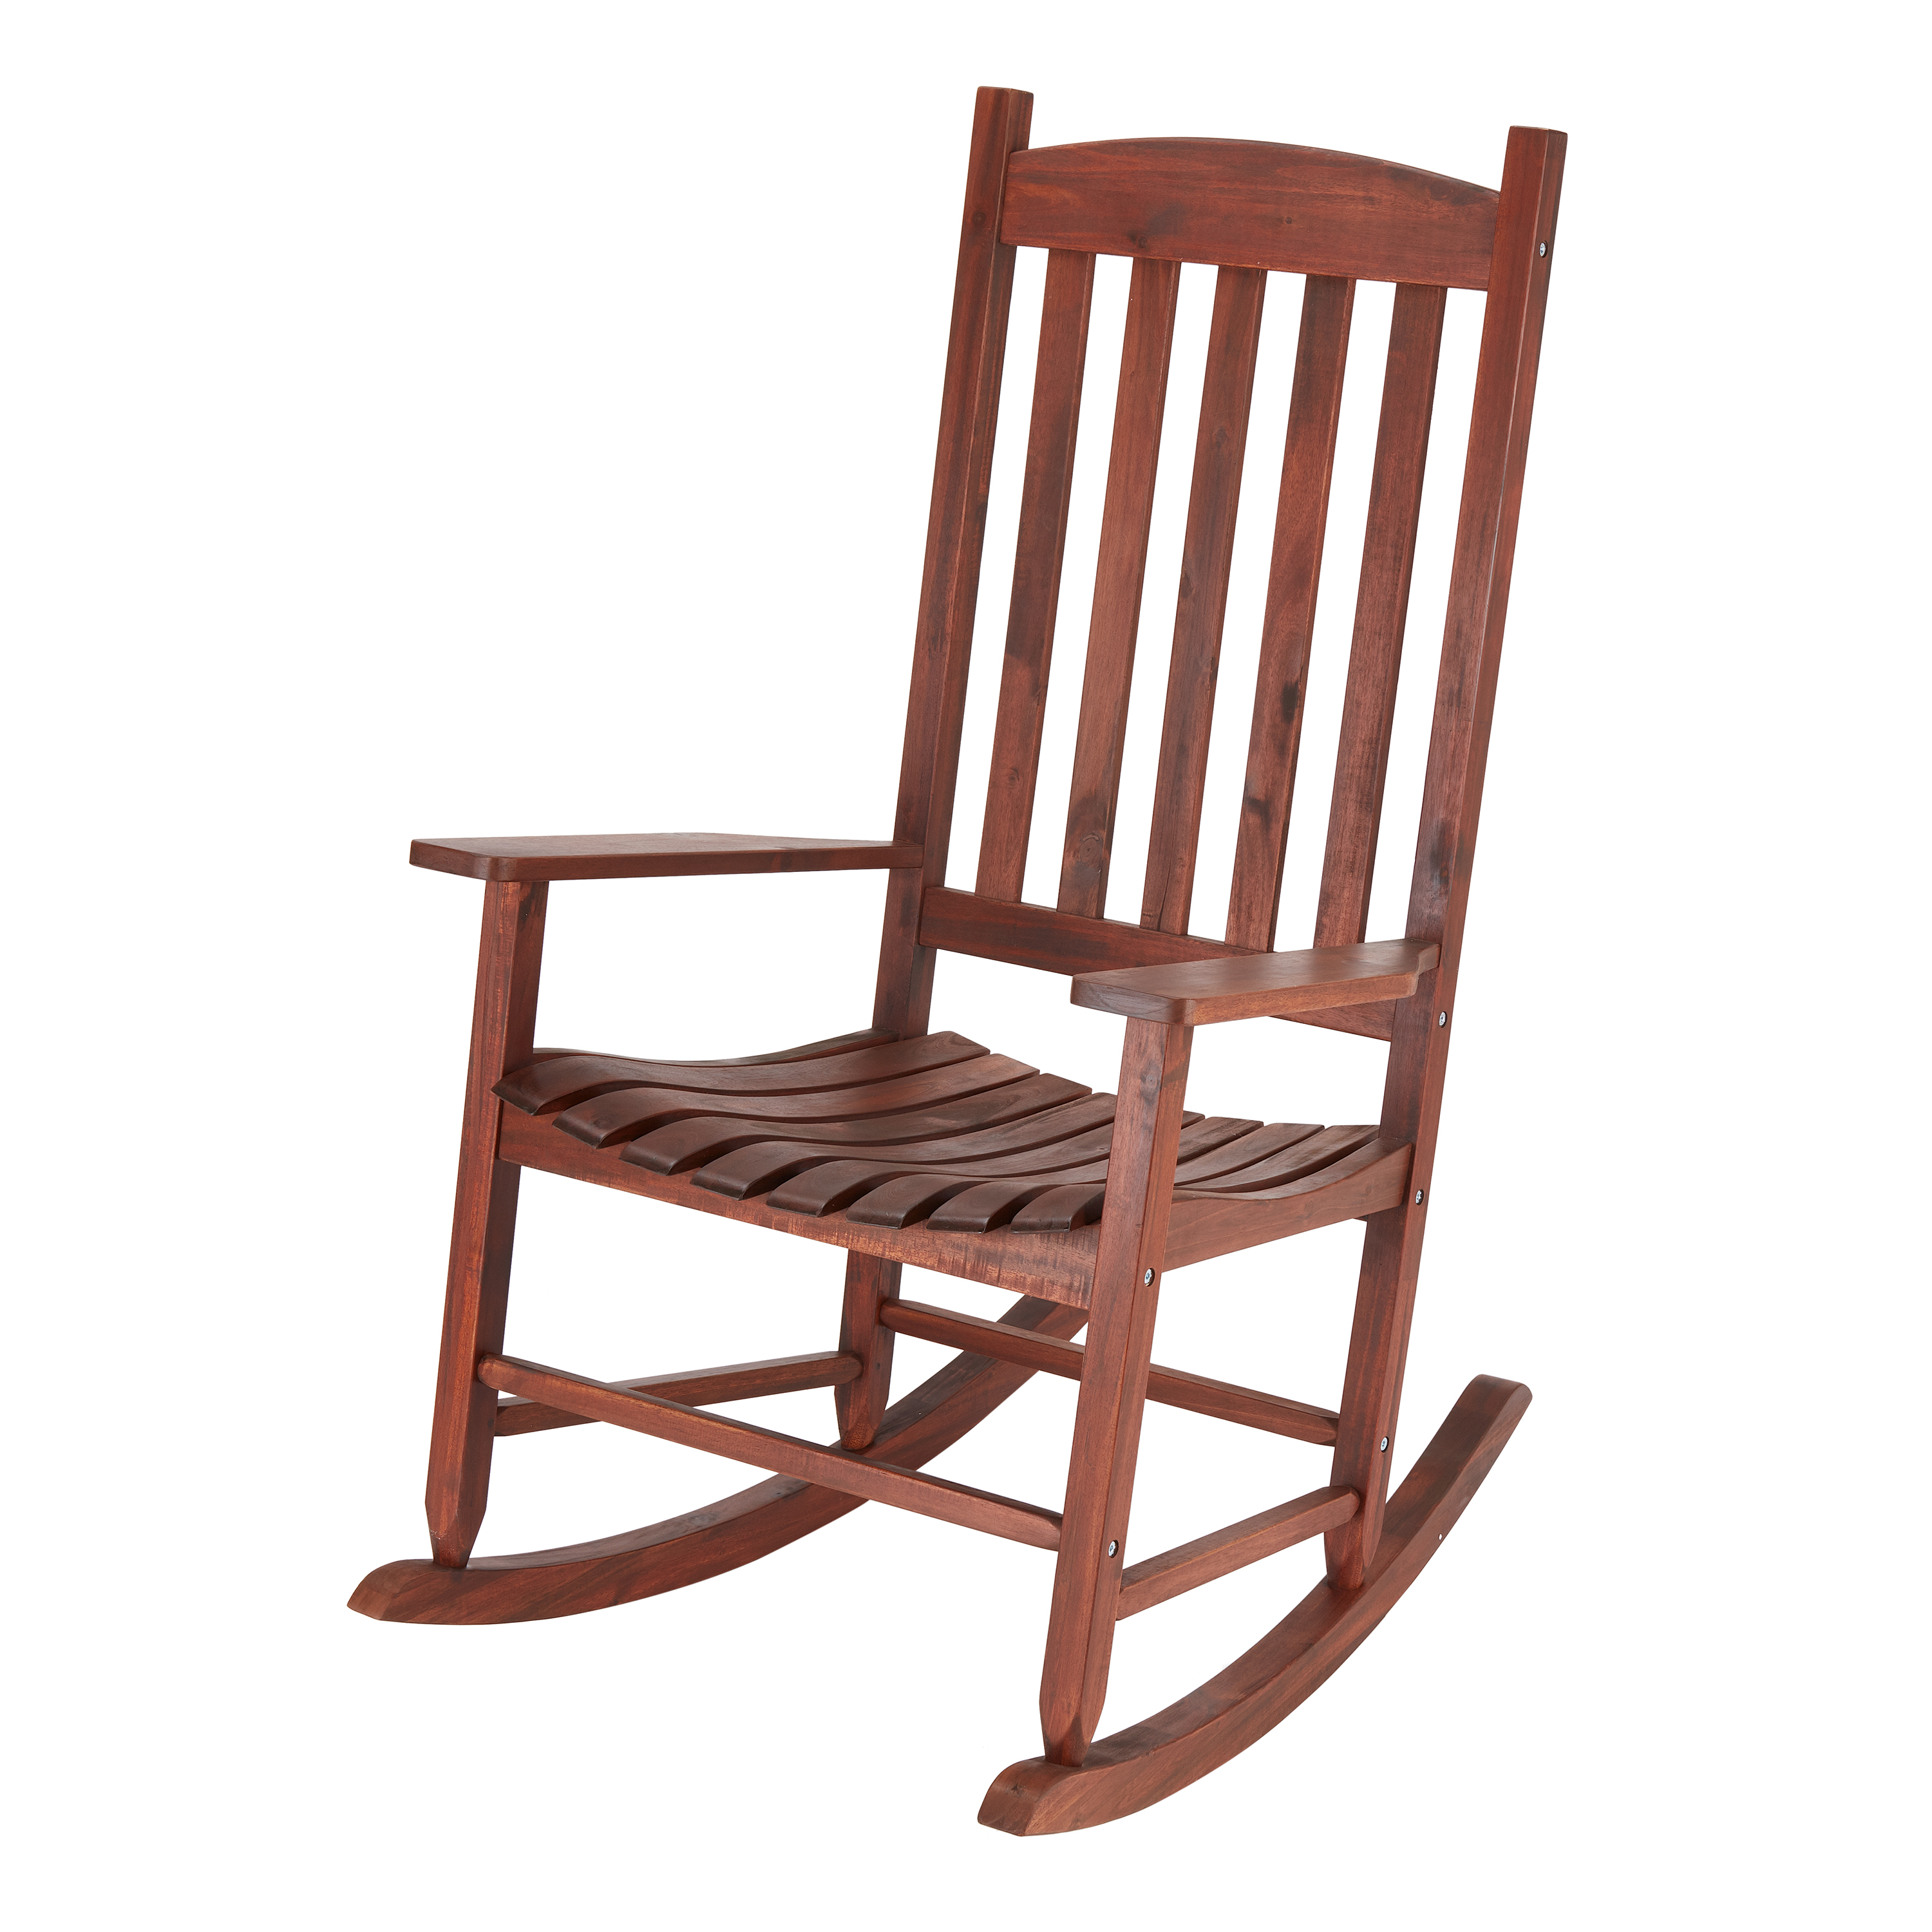 Mainstays Outdoor Wood Slat Rocking Chair